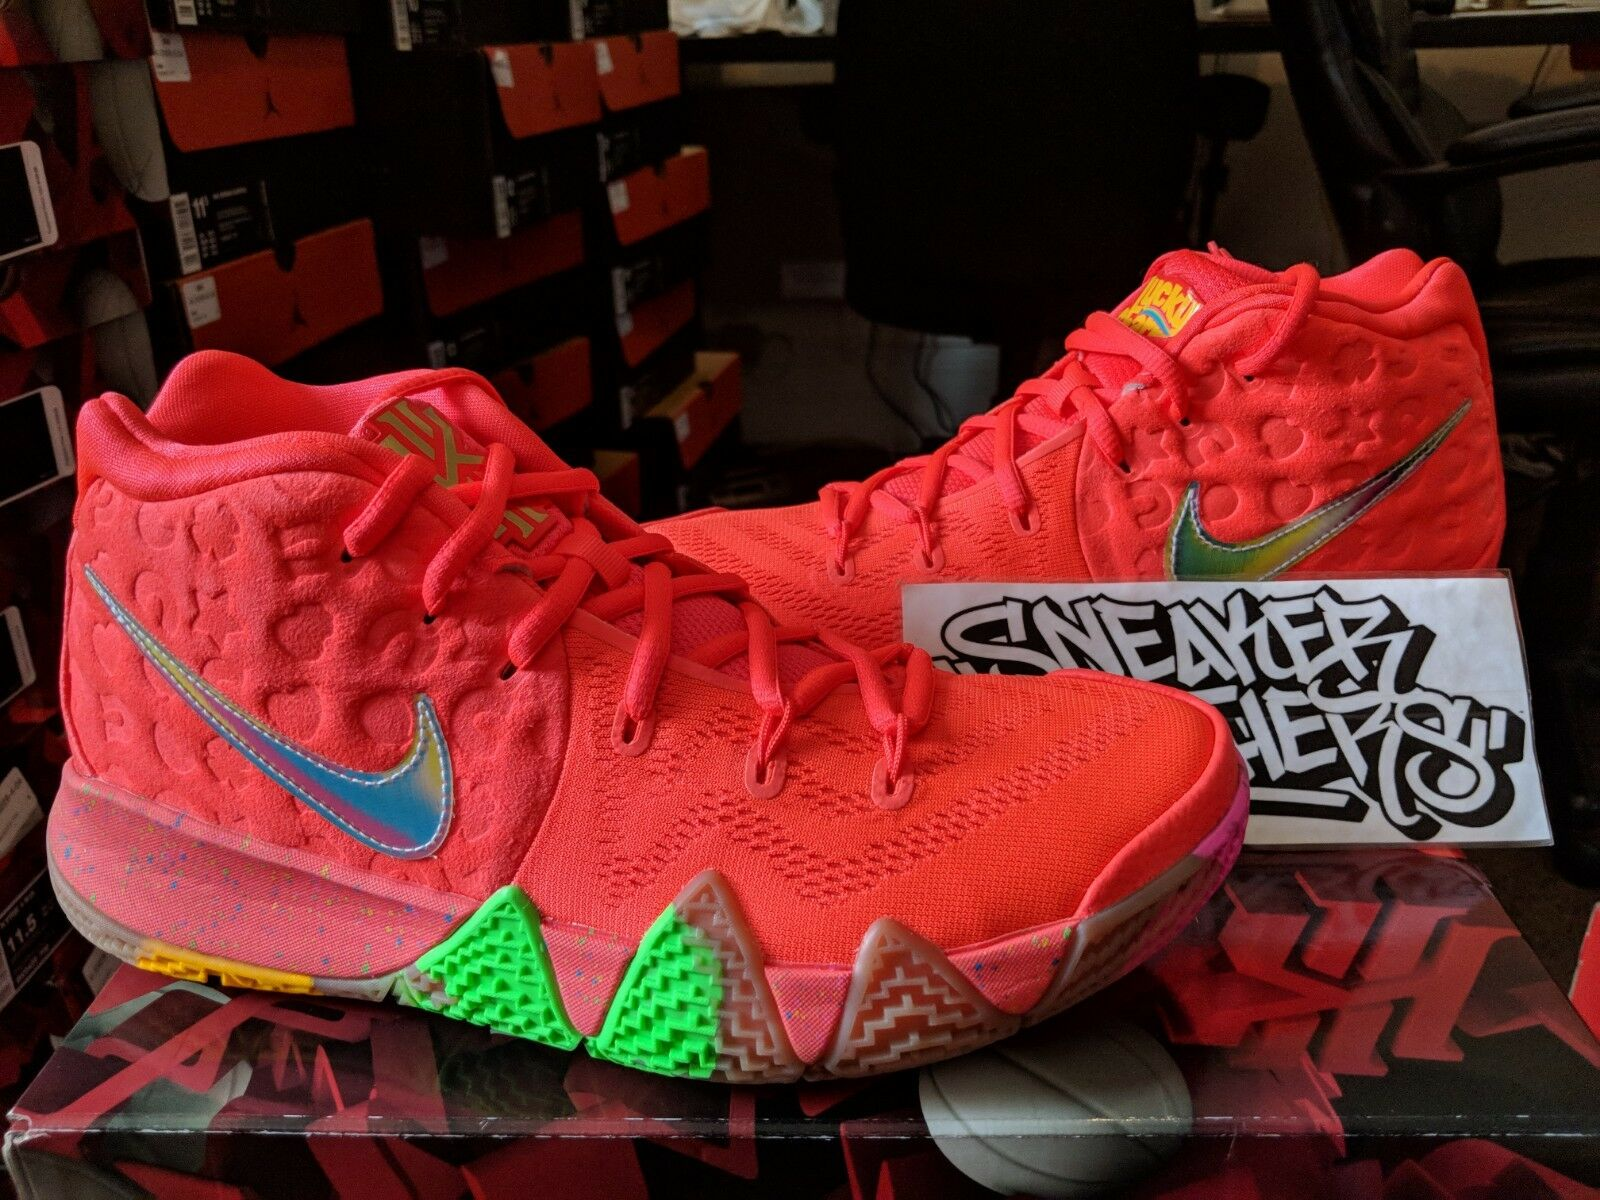 Nike Kyrie 4 IV Lucky Charms Bright Crimson Multi-color Cereal Pack BV0428-600